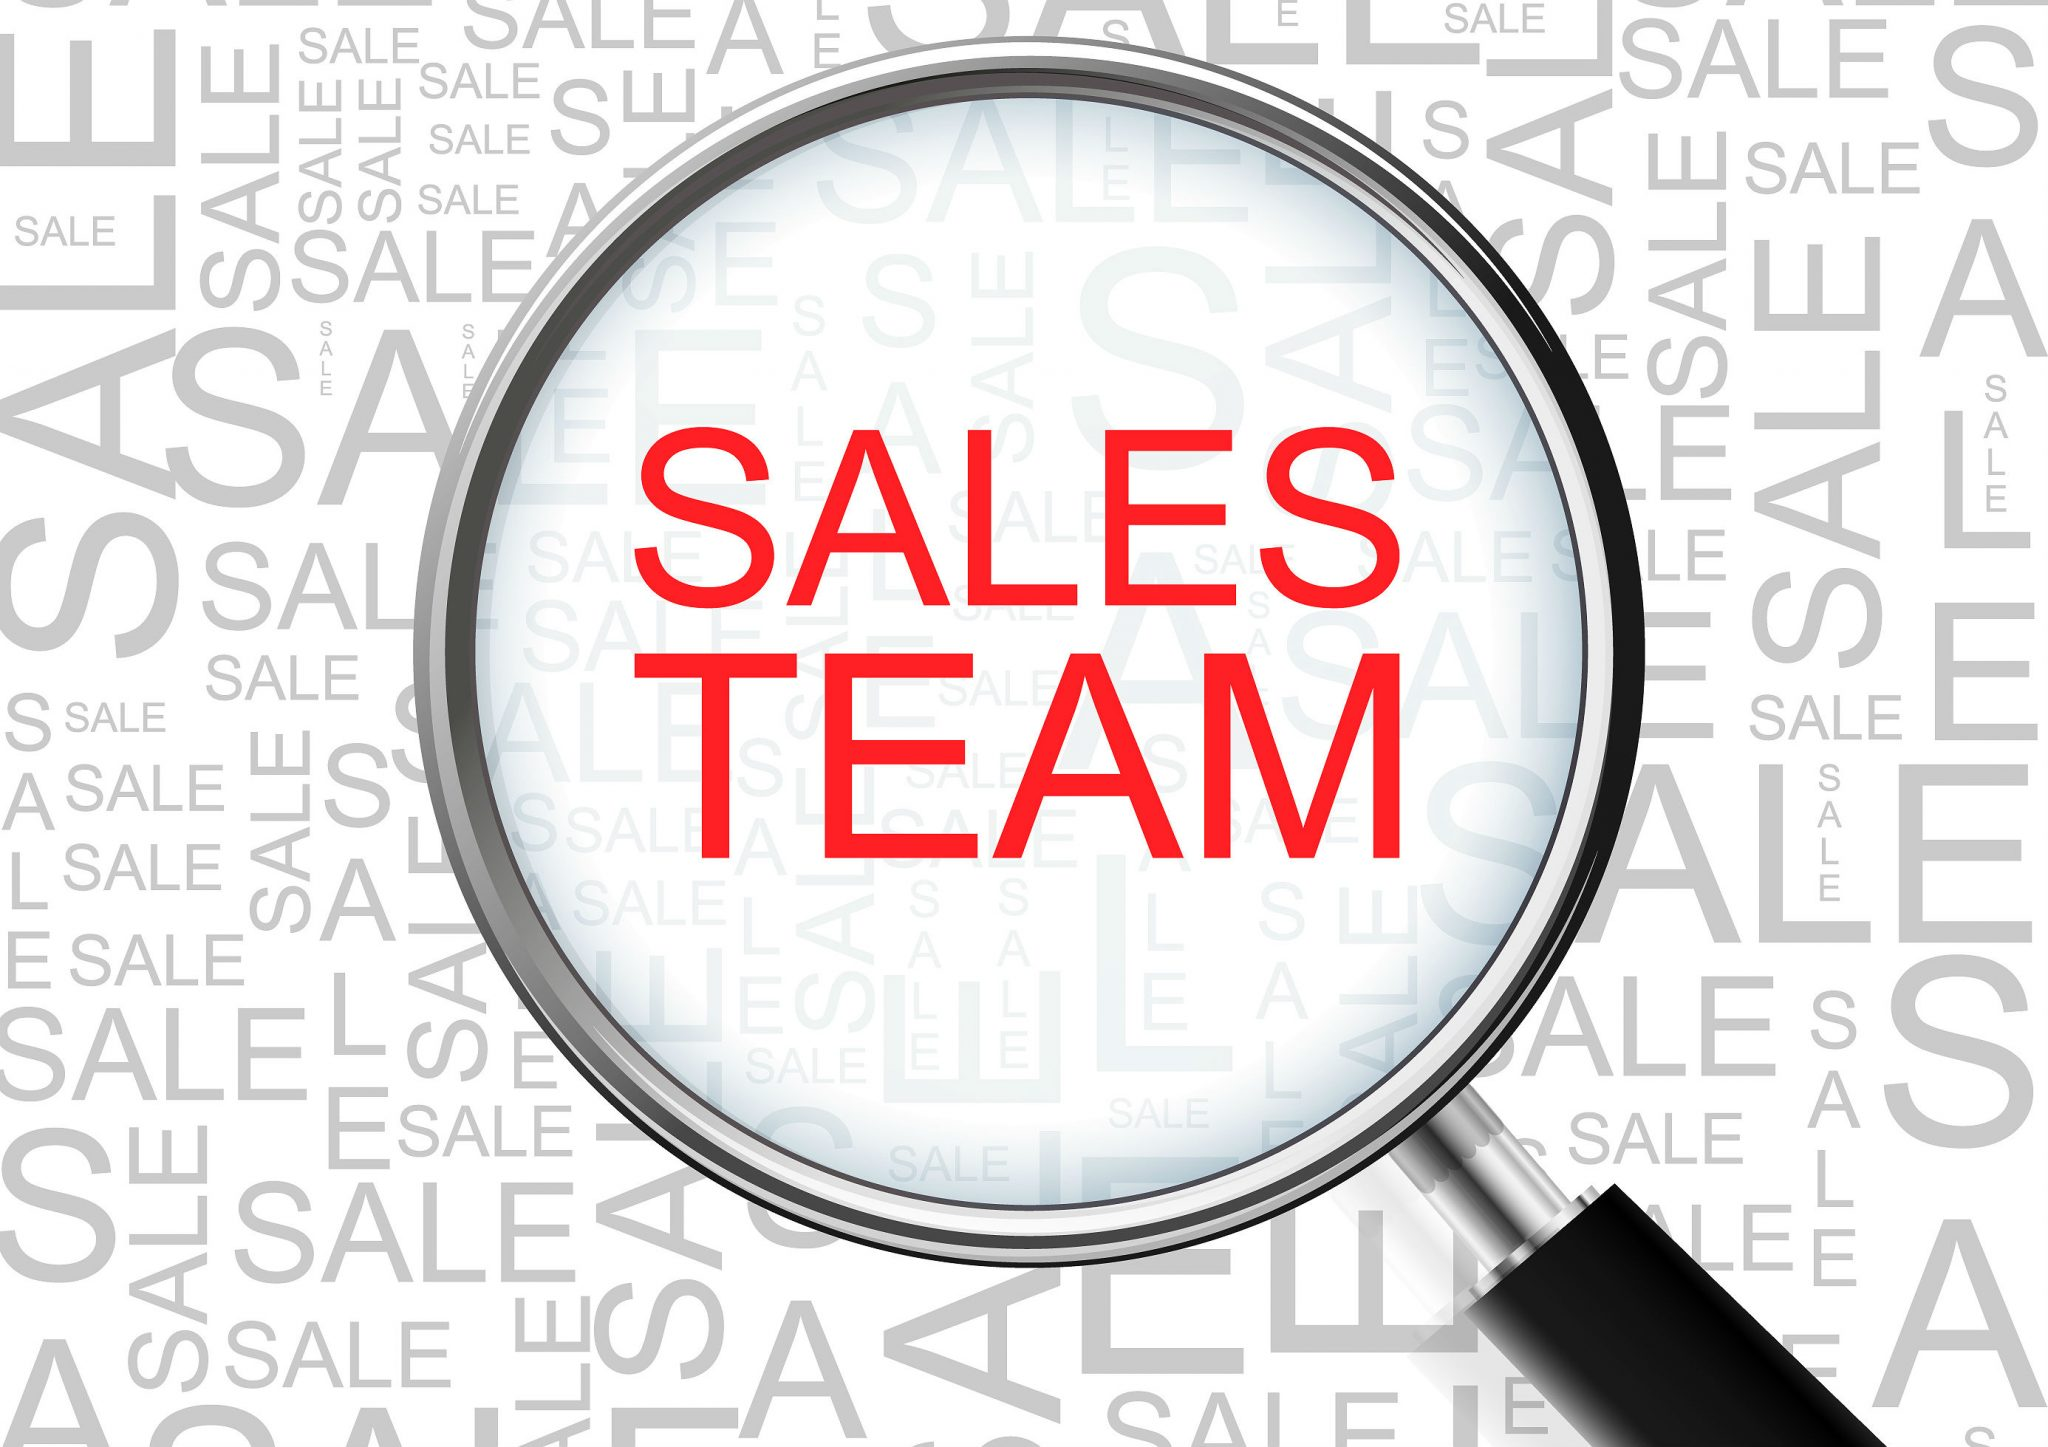 The Competencies and Values You Need to Lead Your Sales Team